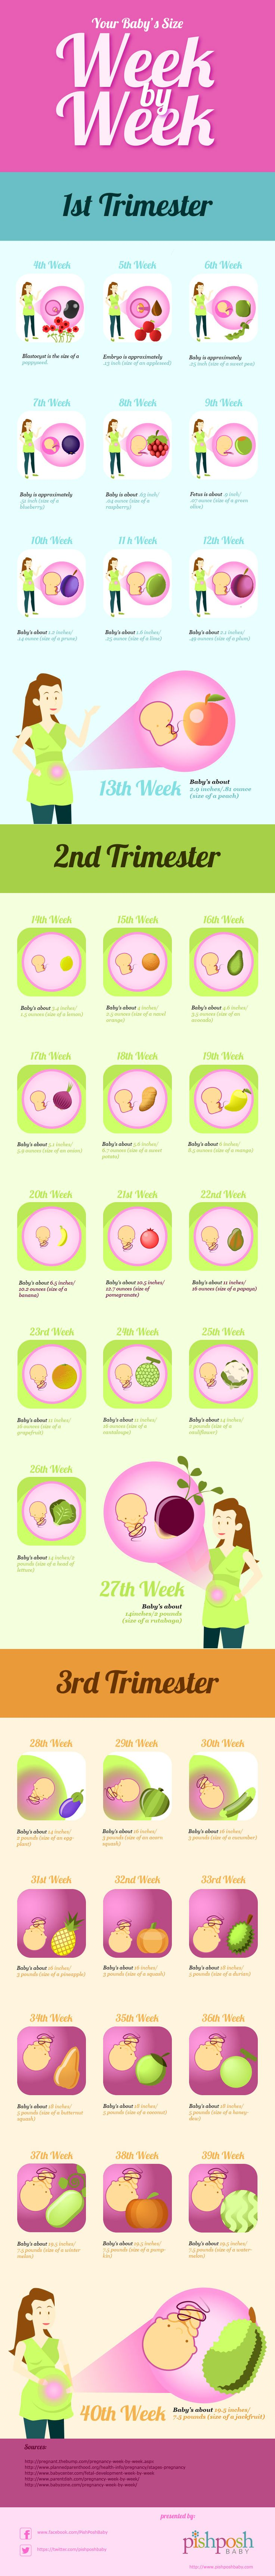 Baby's Size Week by Week infographic